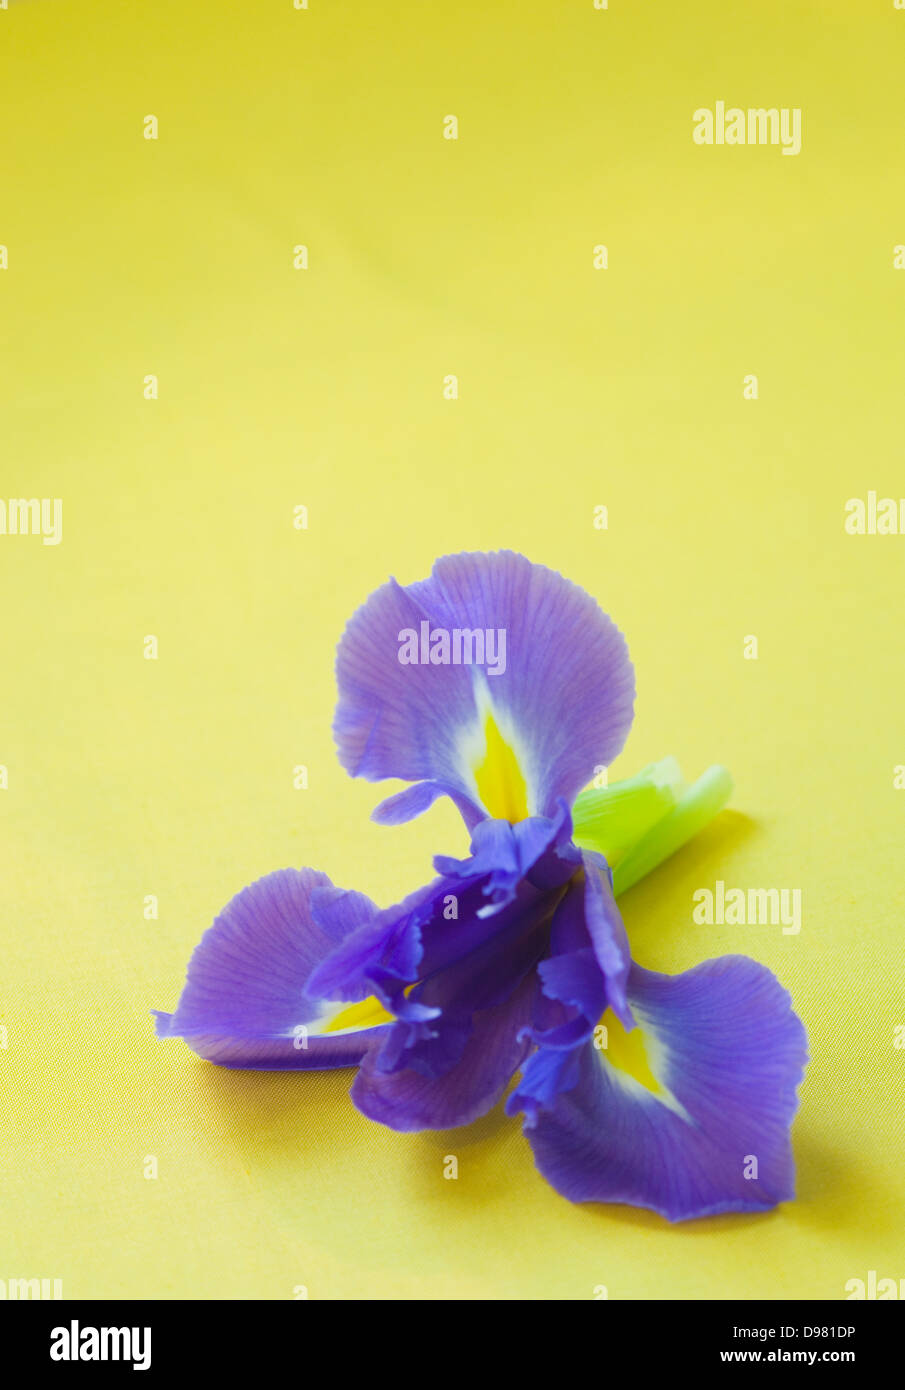 Portrait close-up shot of a purple and yellow Dutch Iris flower on a yellow tabletop. - Stock Image